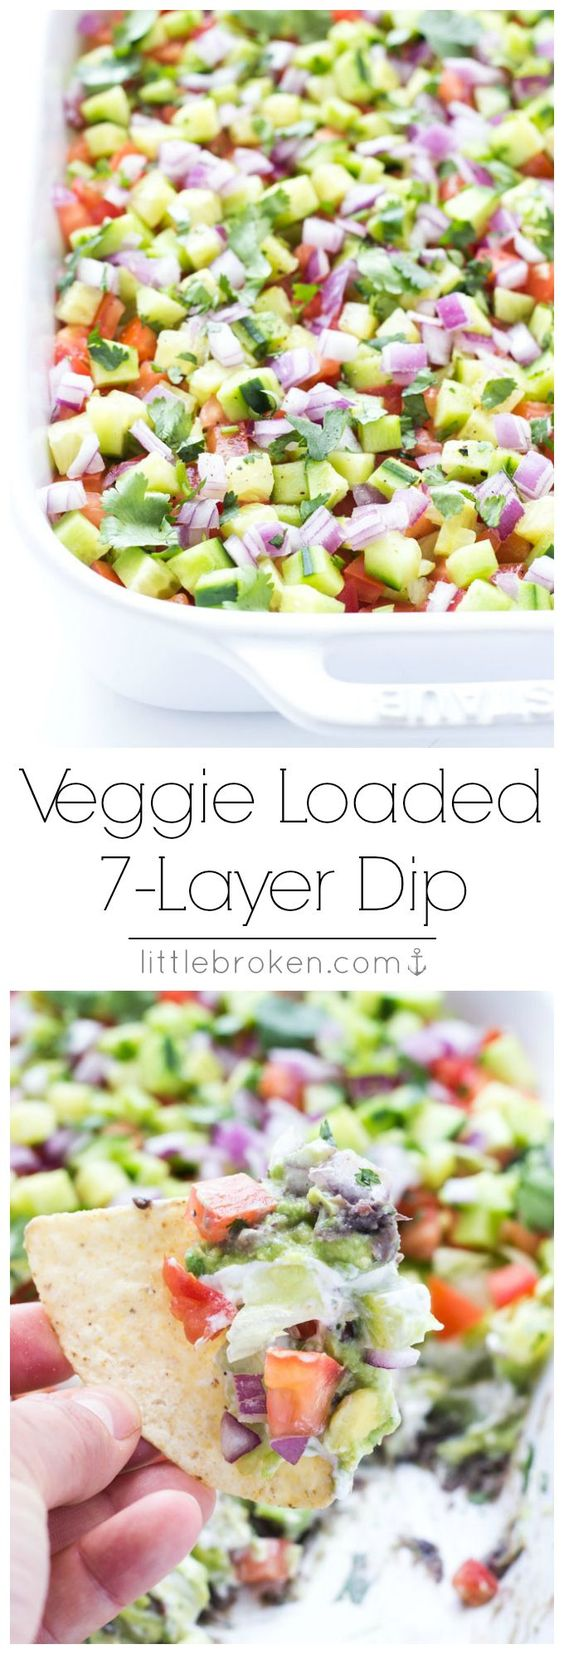 Healthy 7-layer appetizer without any processed canned stuff.